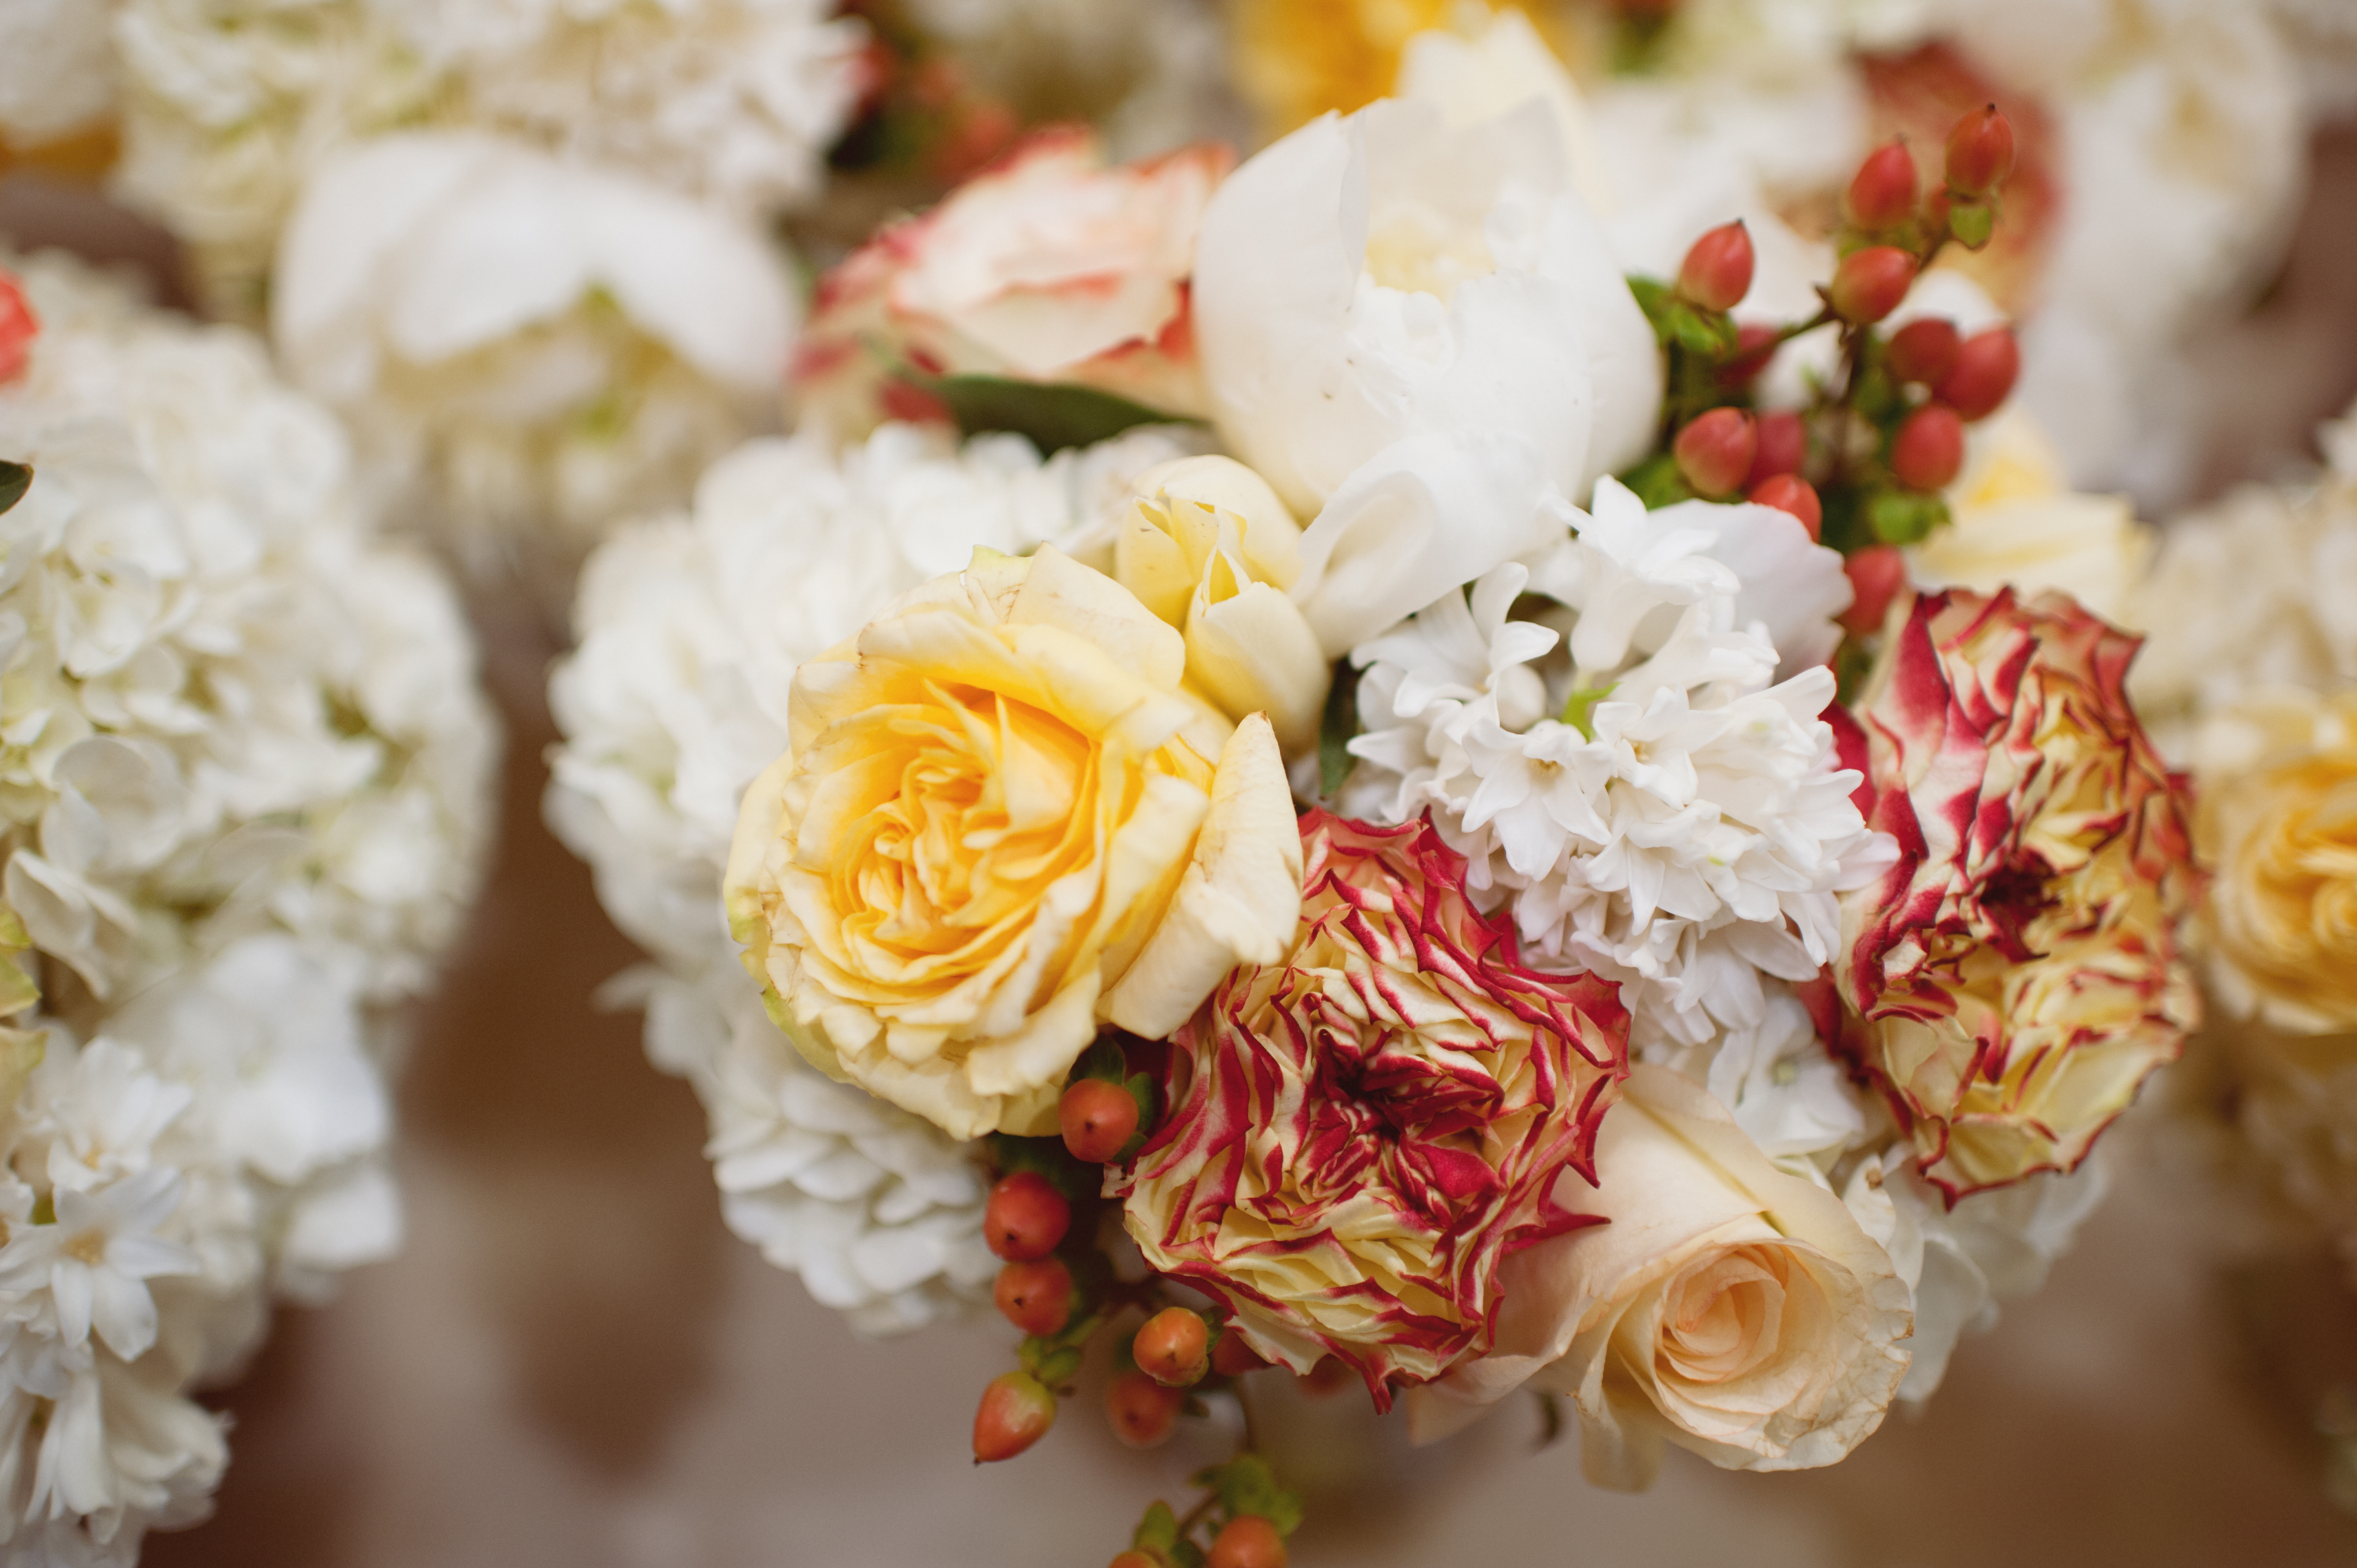 Flowers & Decor, white, yellow, red, Bride Bouquets, Flowers, Bouquet, Jen kevin